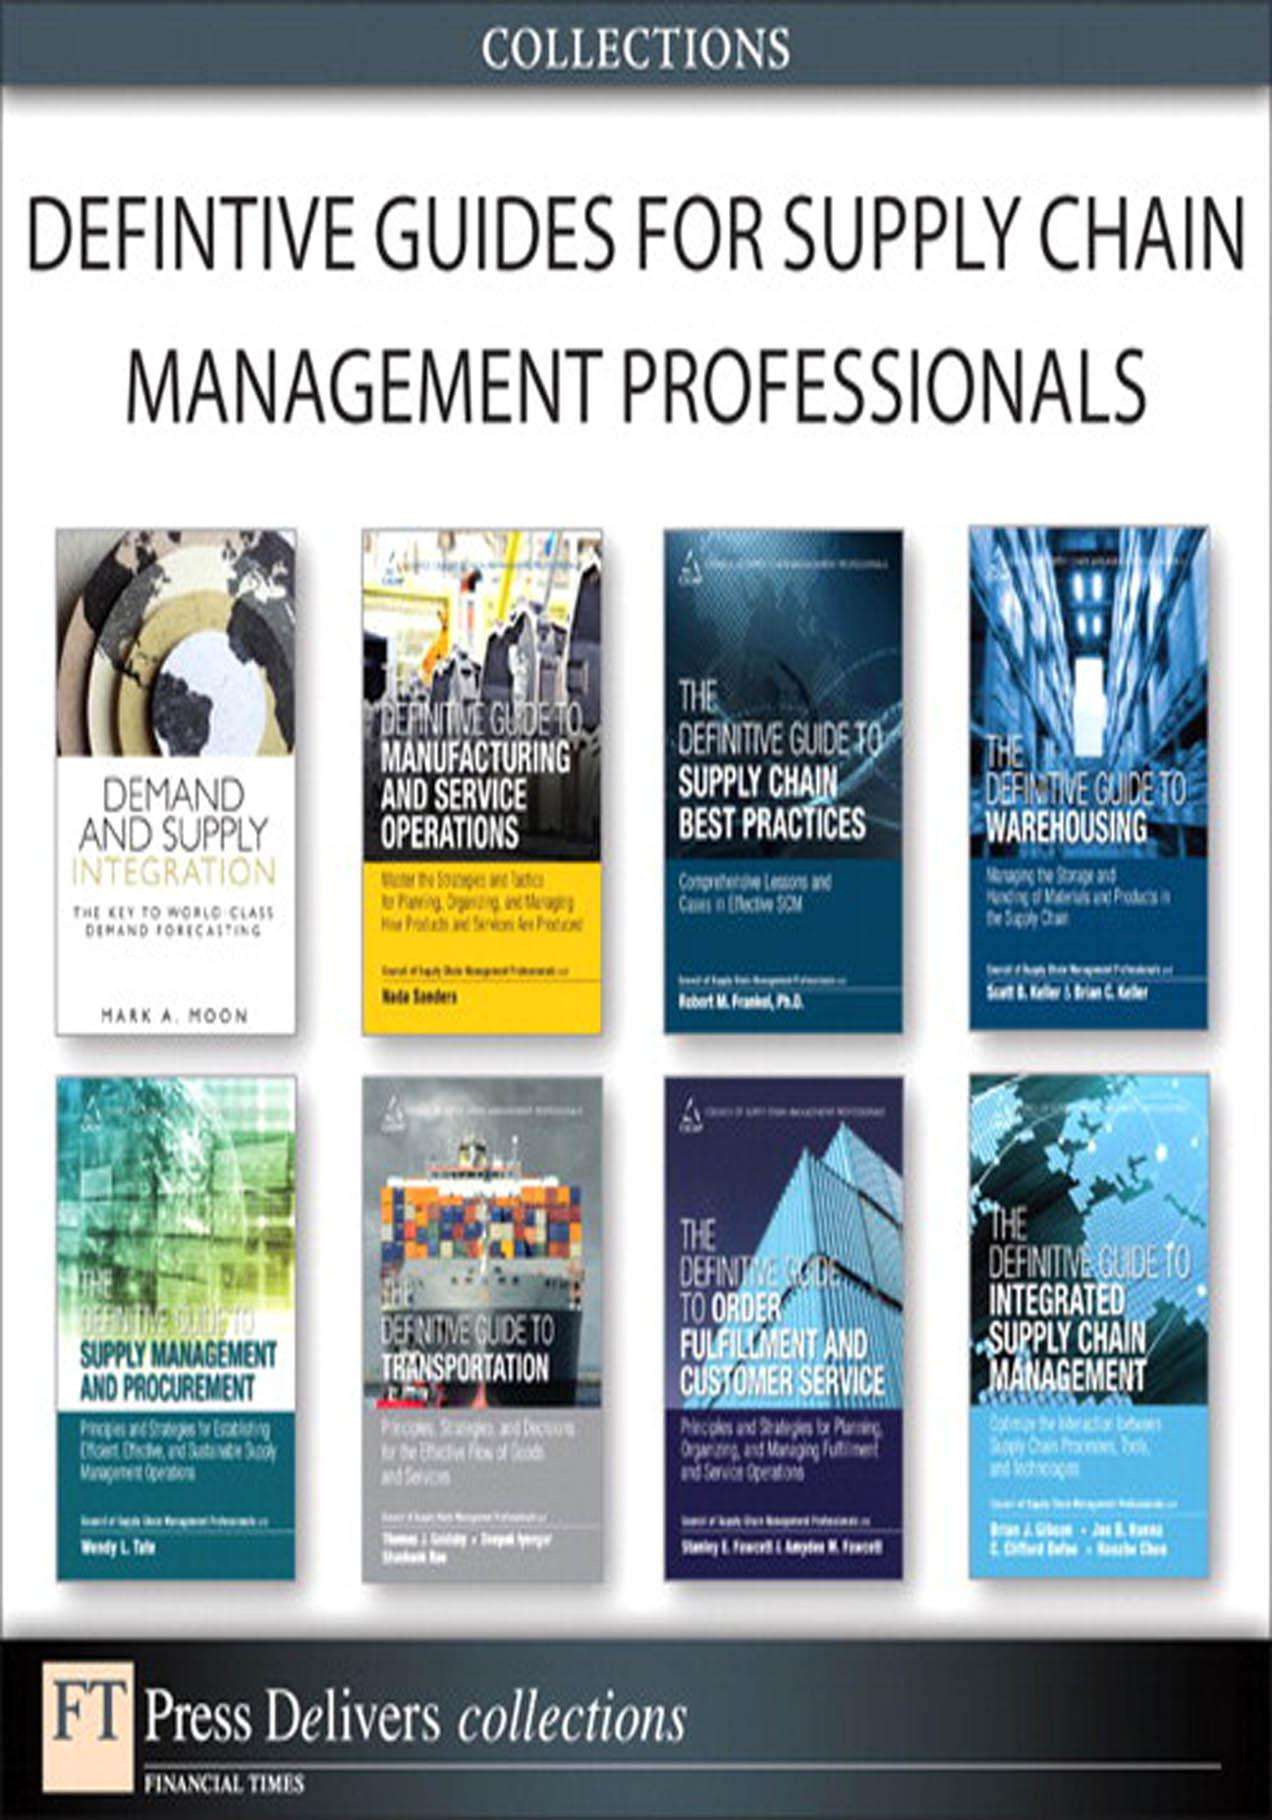 Defintive Guides for Supply Chain Management Professionals (Collection)